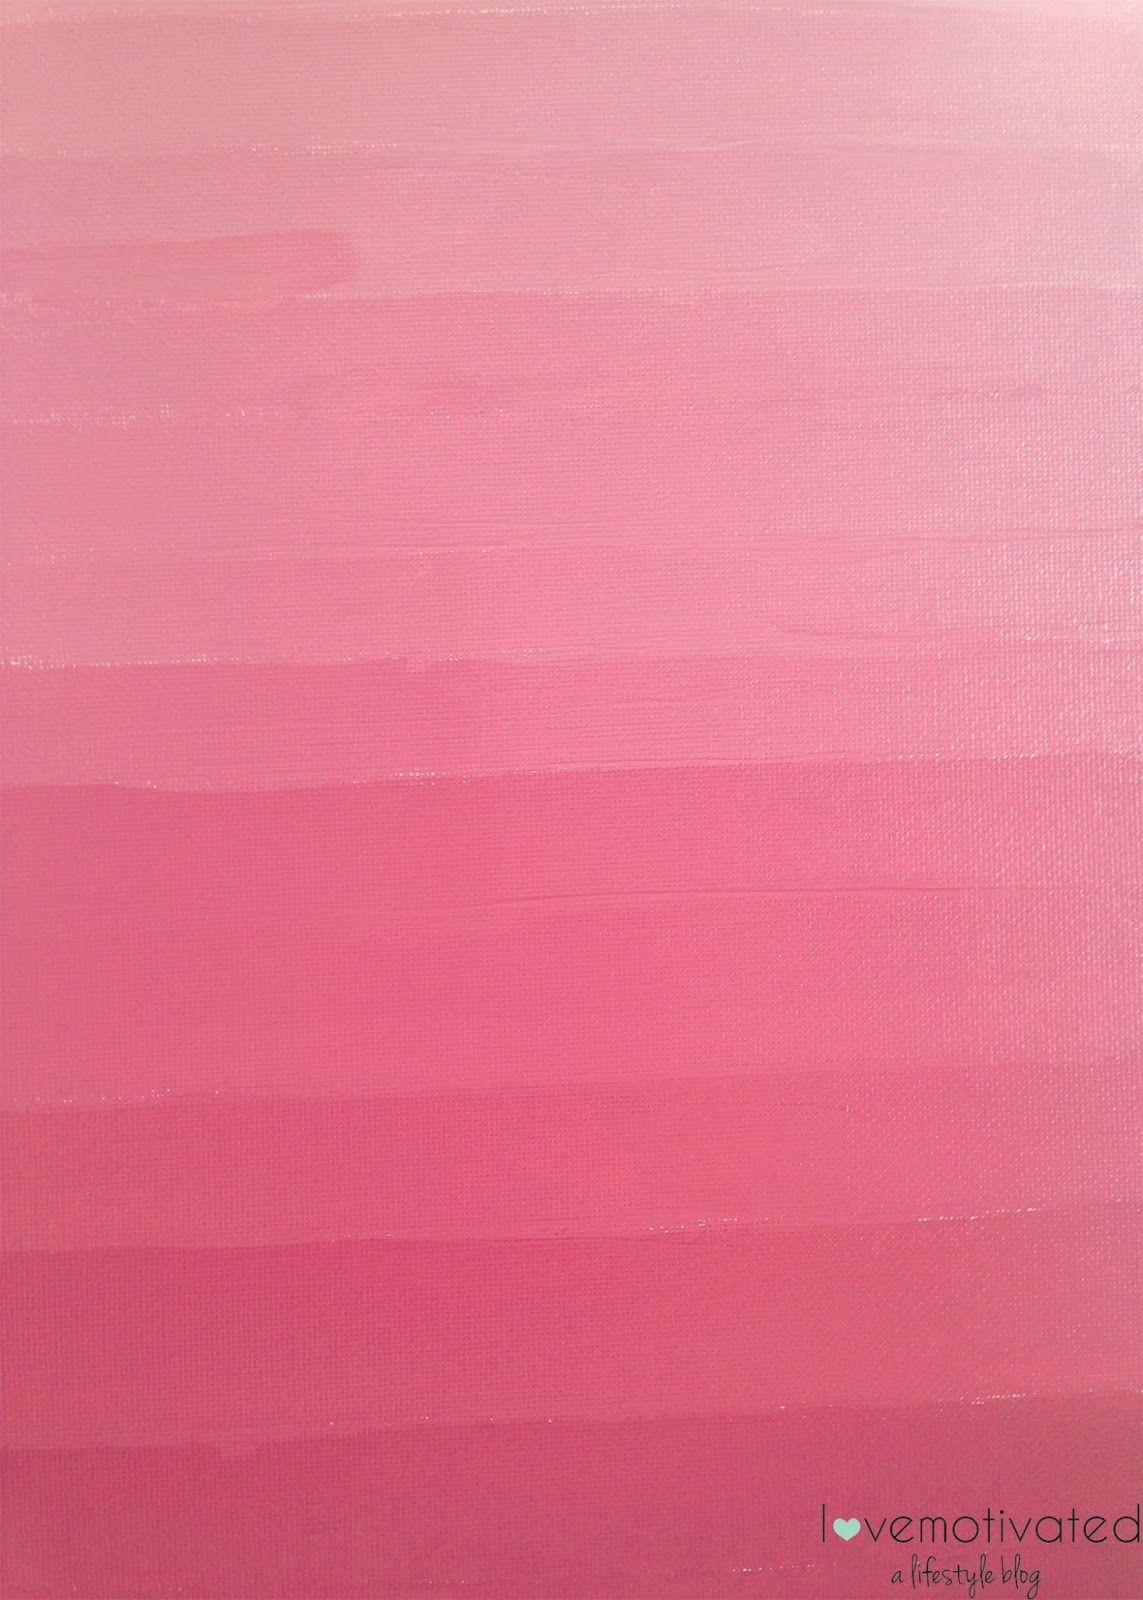 Ombre Wallpaper Pink Neon pink ombre closeup 1143x1600